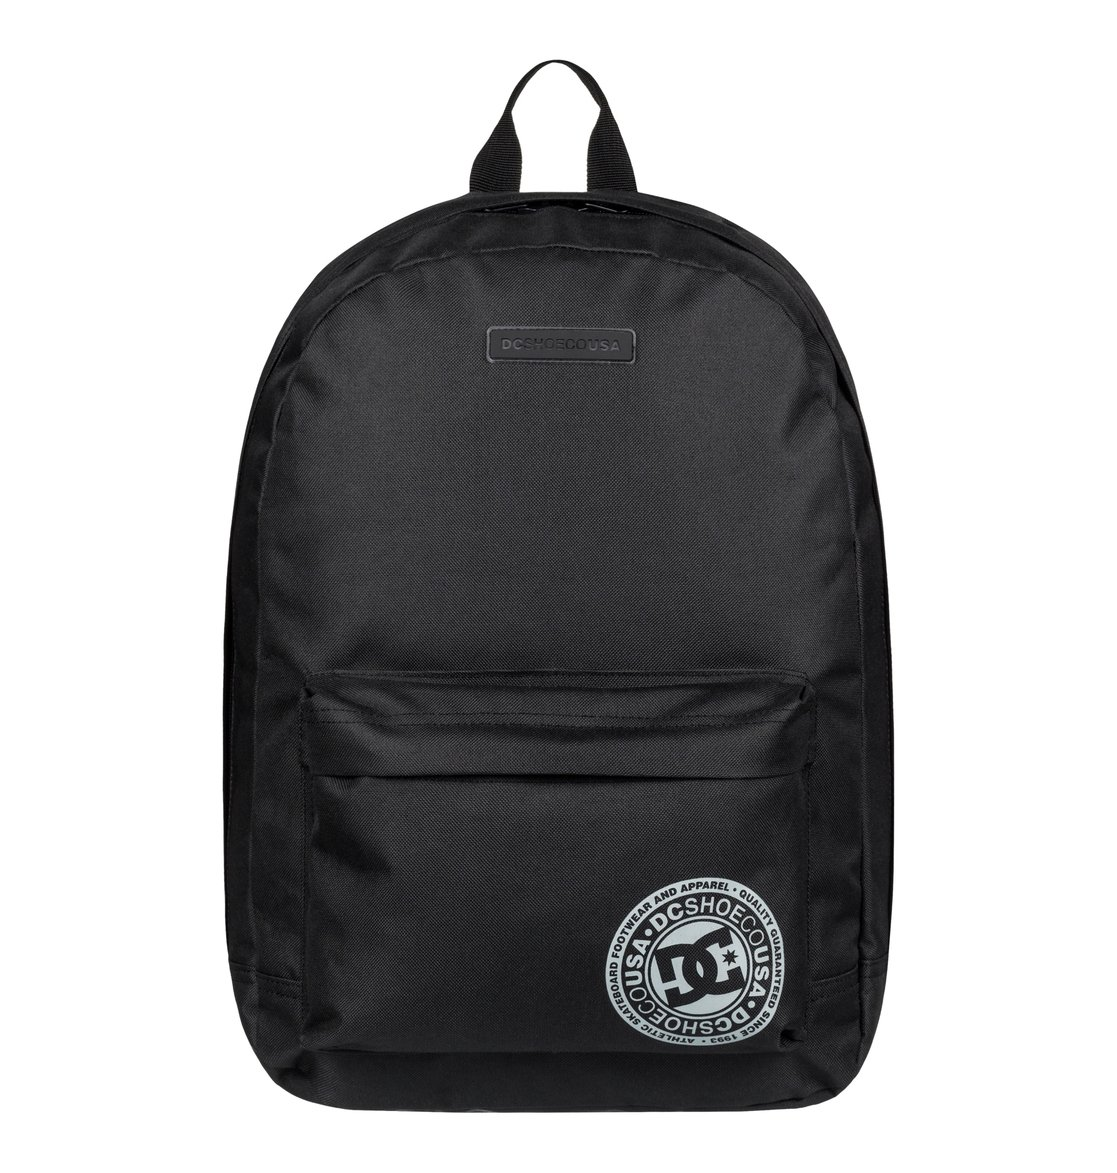 DC Shoes™ Backstack 18.5L - Medium Backpack - ONE SIZE - Black ... 9ebfff34a5